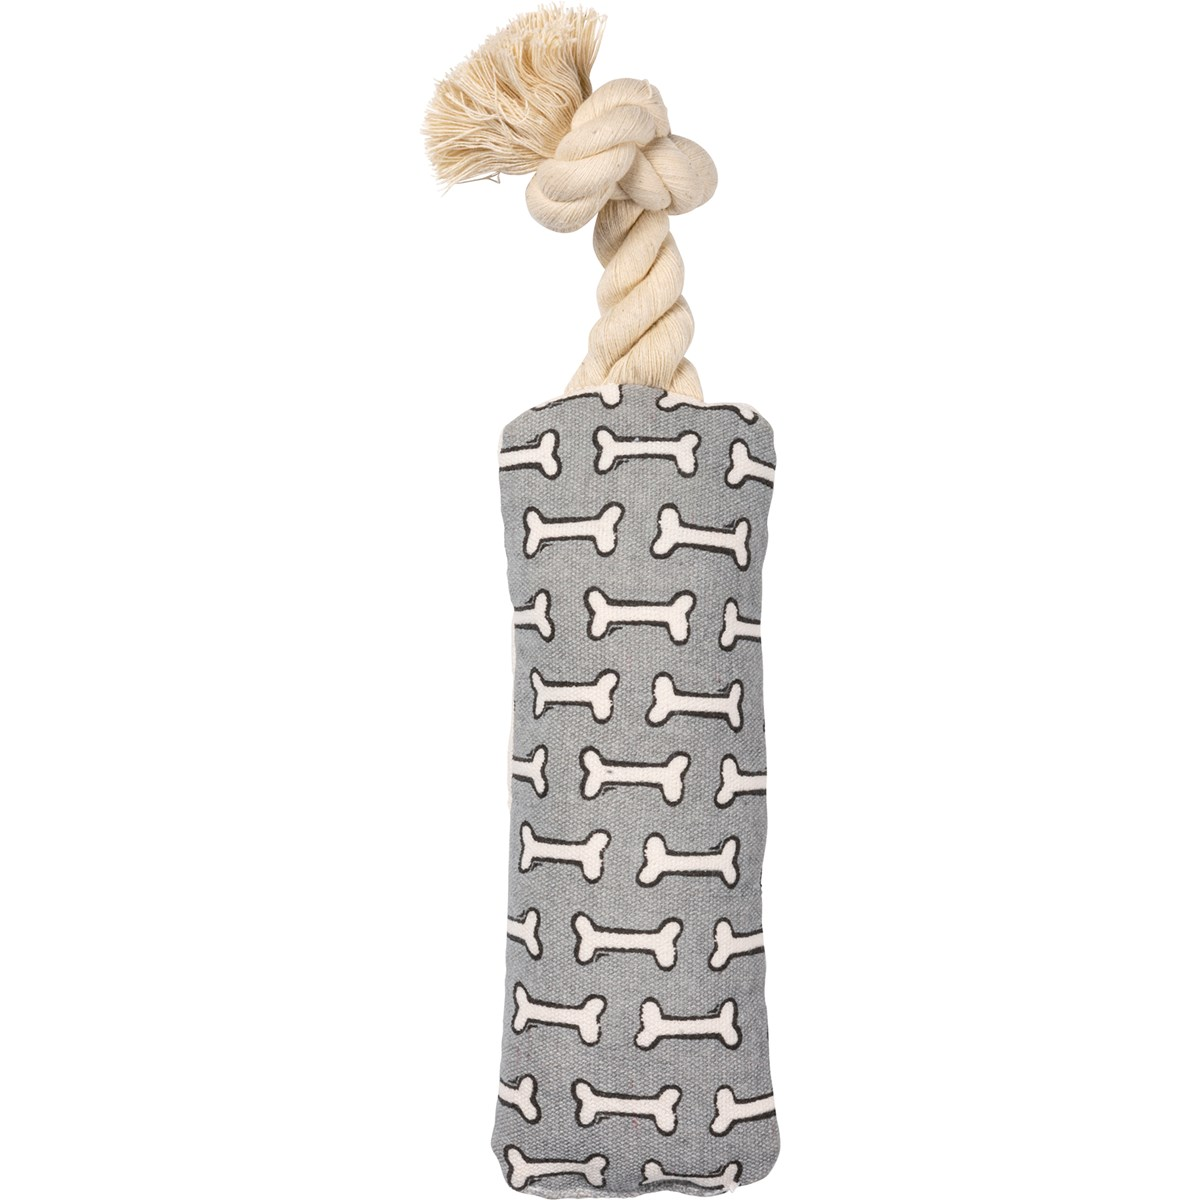 "Dog Toy - The Puppy Post - 3"" x 8"" x 2"" - Canvas, Rope"